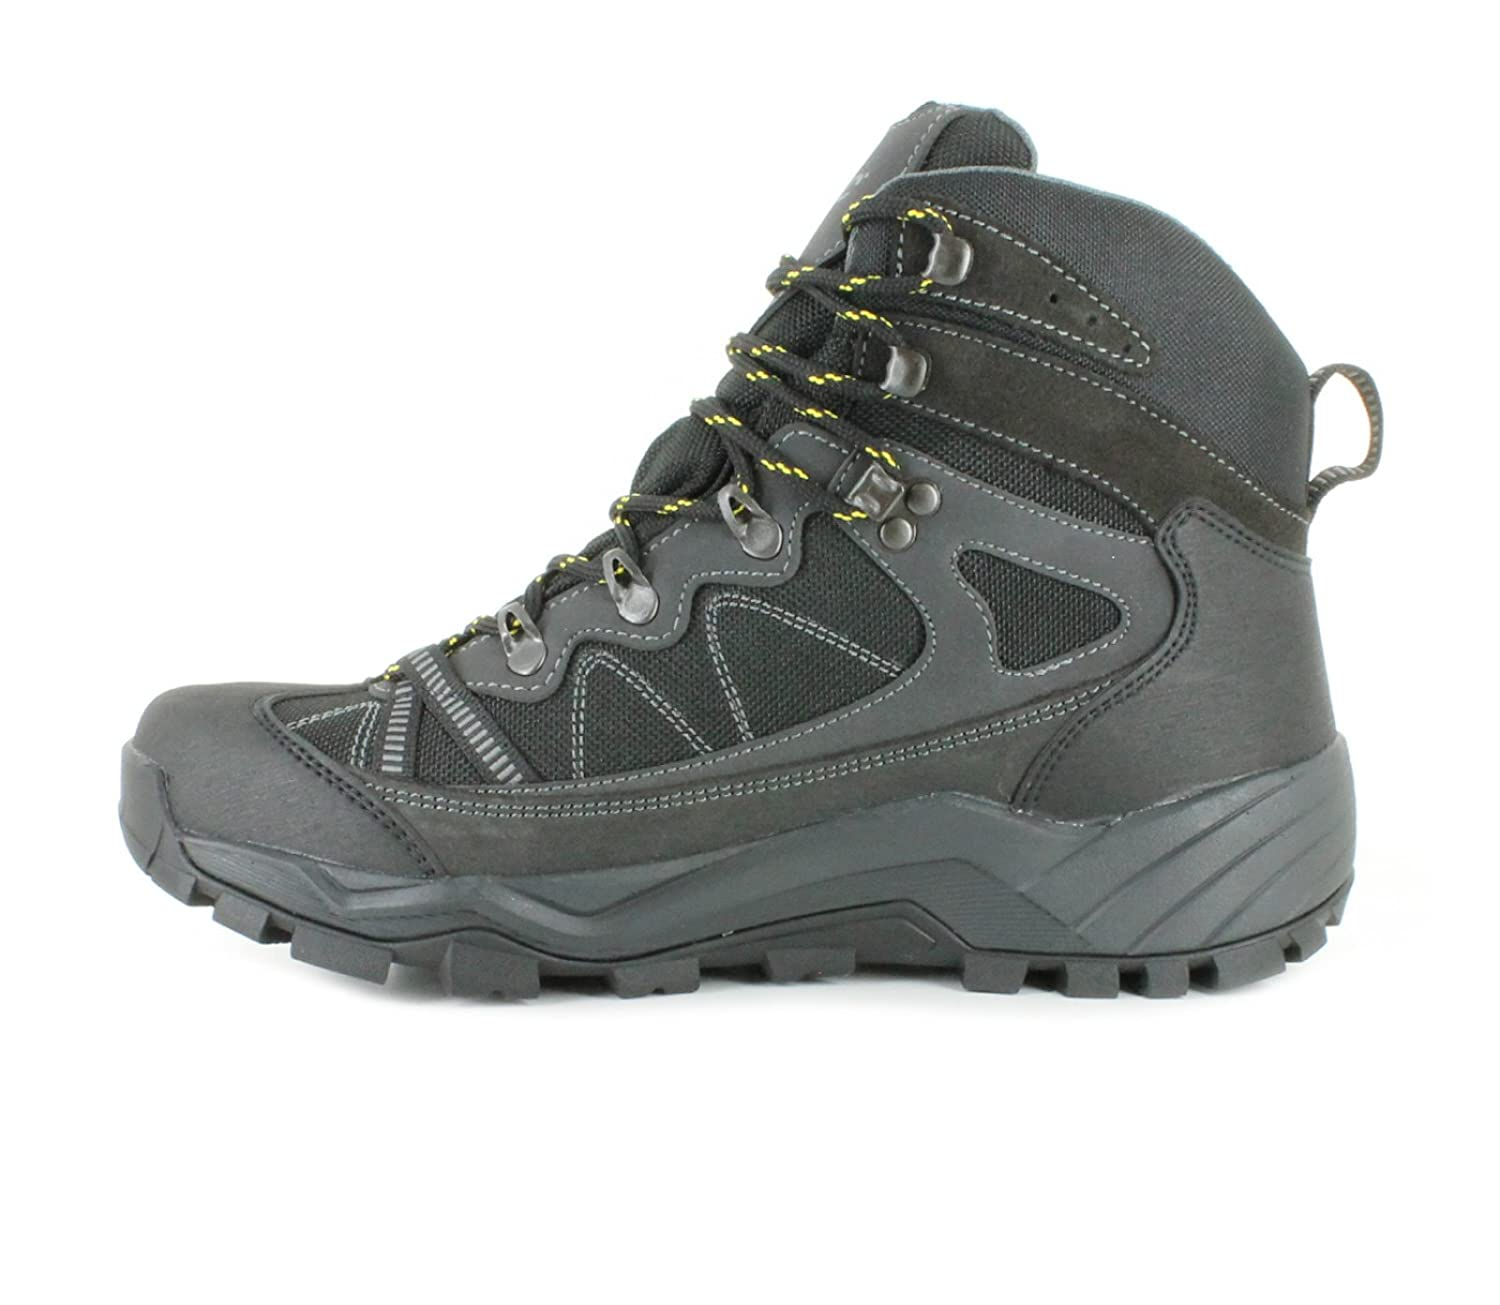 abbf6440210a Hi-Tec V-Lite Altitude Mens Other Leather Material Walking Boots  Charcoal Black - 7 UK  Amazon.co.uk  Shoes   Bags